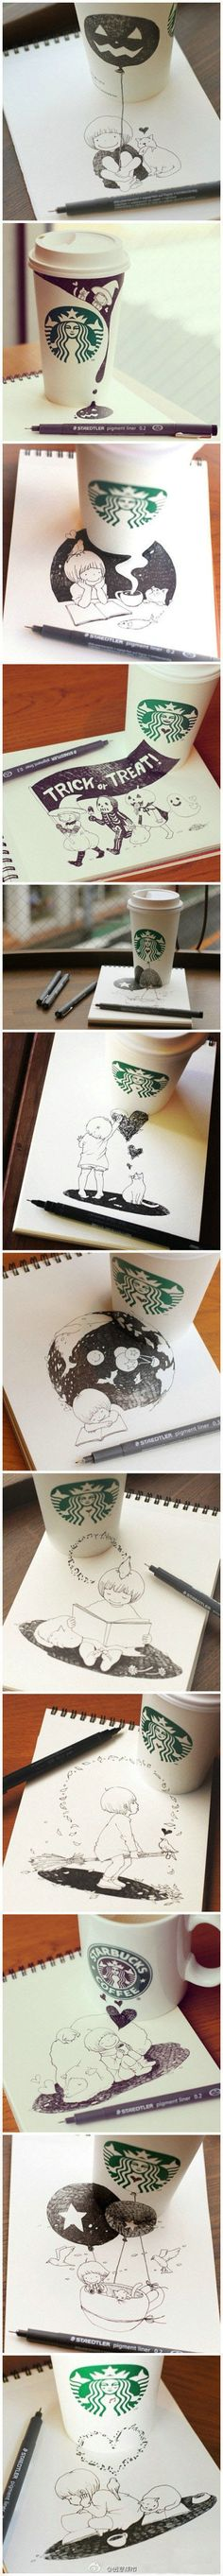 beautiful and imaginative coffee cup art-don't care for Halloween drawings but awesome idea. Starbucks Cup Art, Starbucks Coffee, Coffee Cup Art, Web Design, Crayon, Storyboard, Amazing Art, Awesome, Cute Art